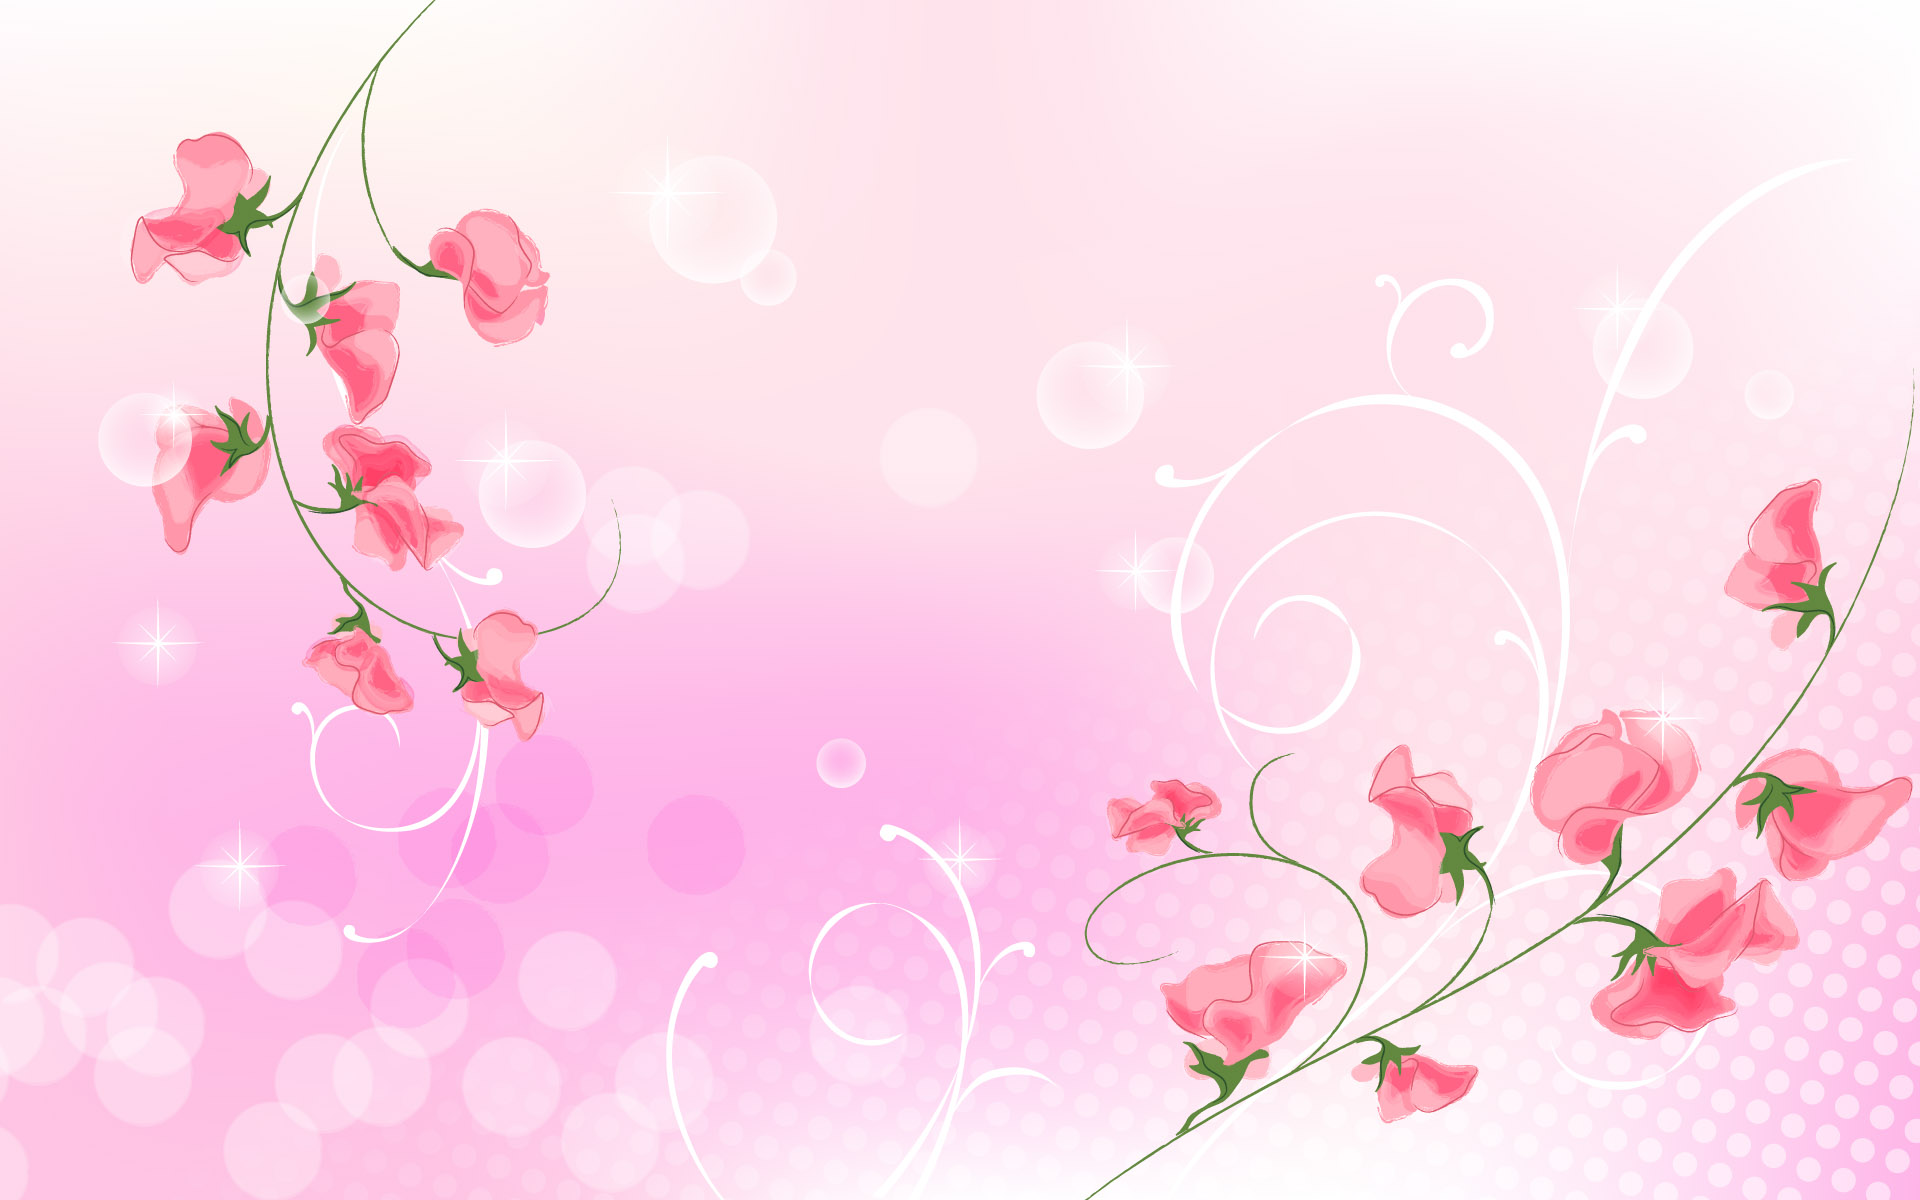 The two branches of the flower are red, and background is light pink, they two are such a fit.